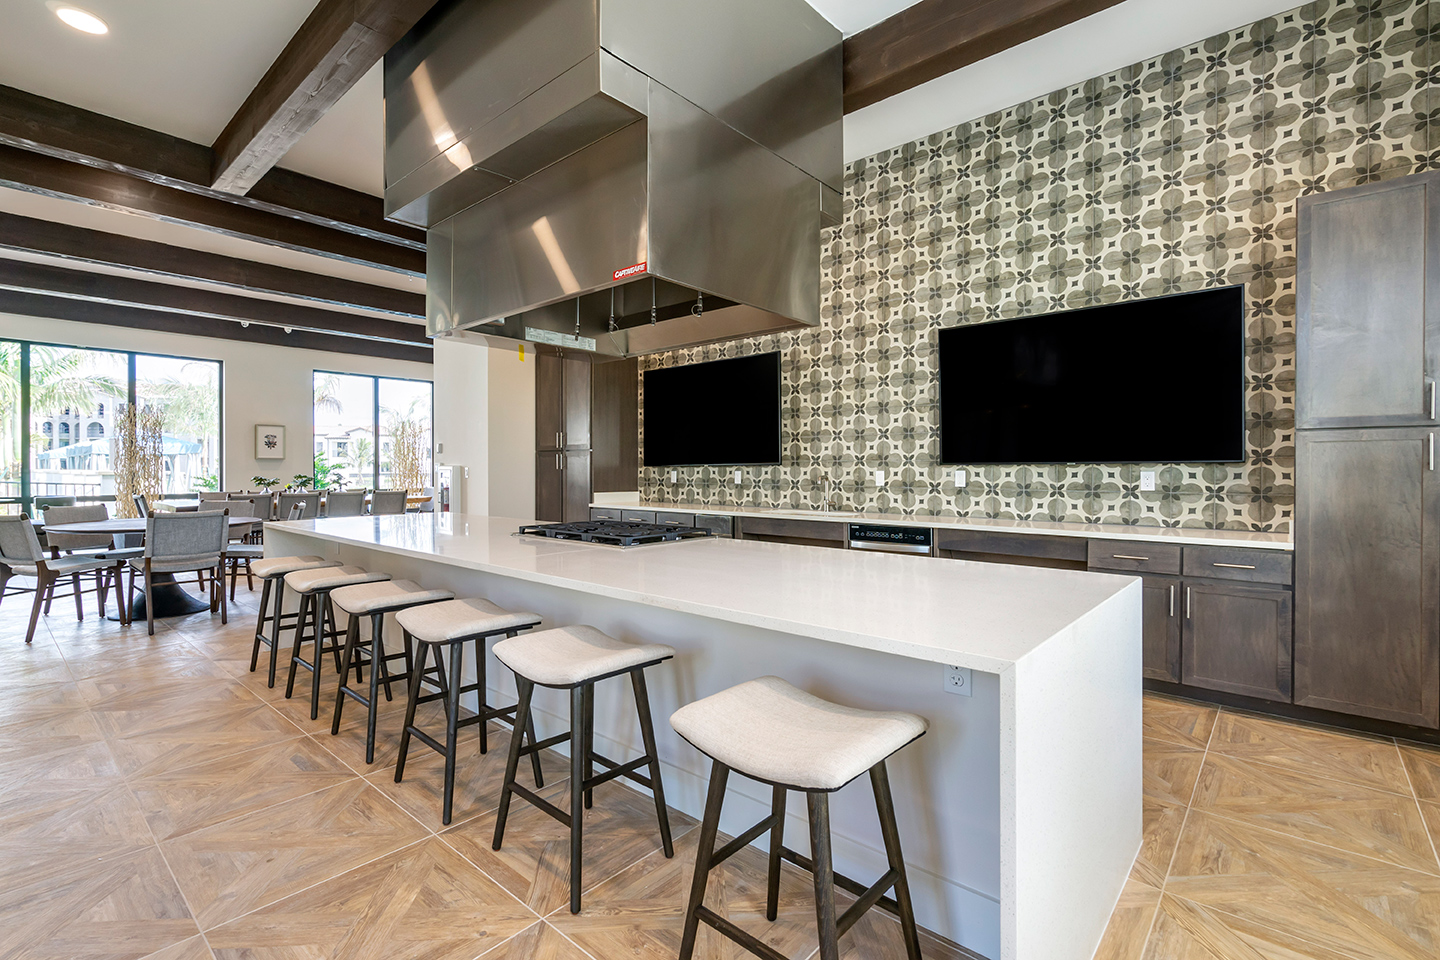 Demonstration kitchen with large TV screens, gas range, cabinets, and barstool seating